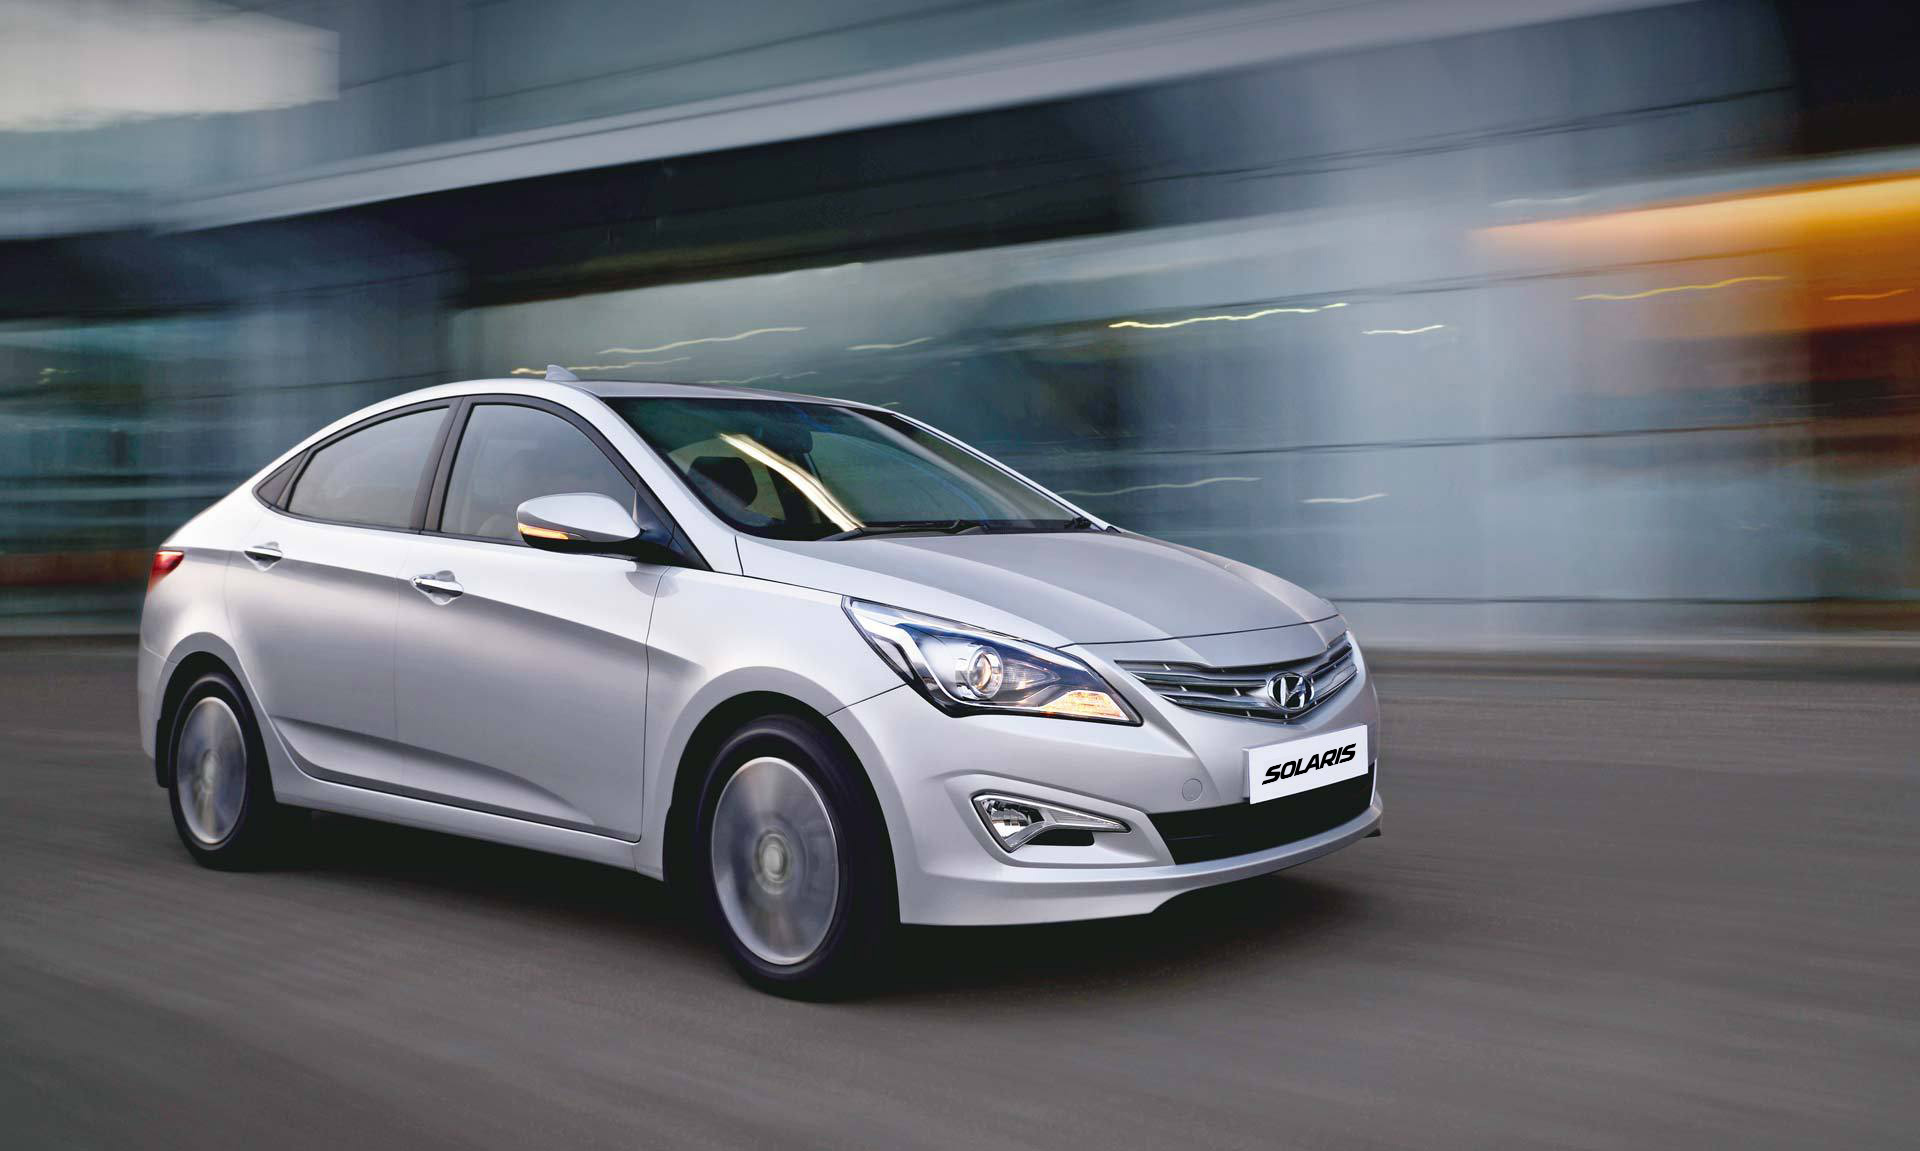 2017 Hyundai Solaris Prices in Egypt, Gulf Specs & Reviews for Cairo, Alexandria and Giza ...